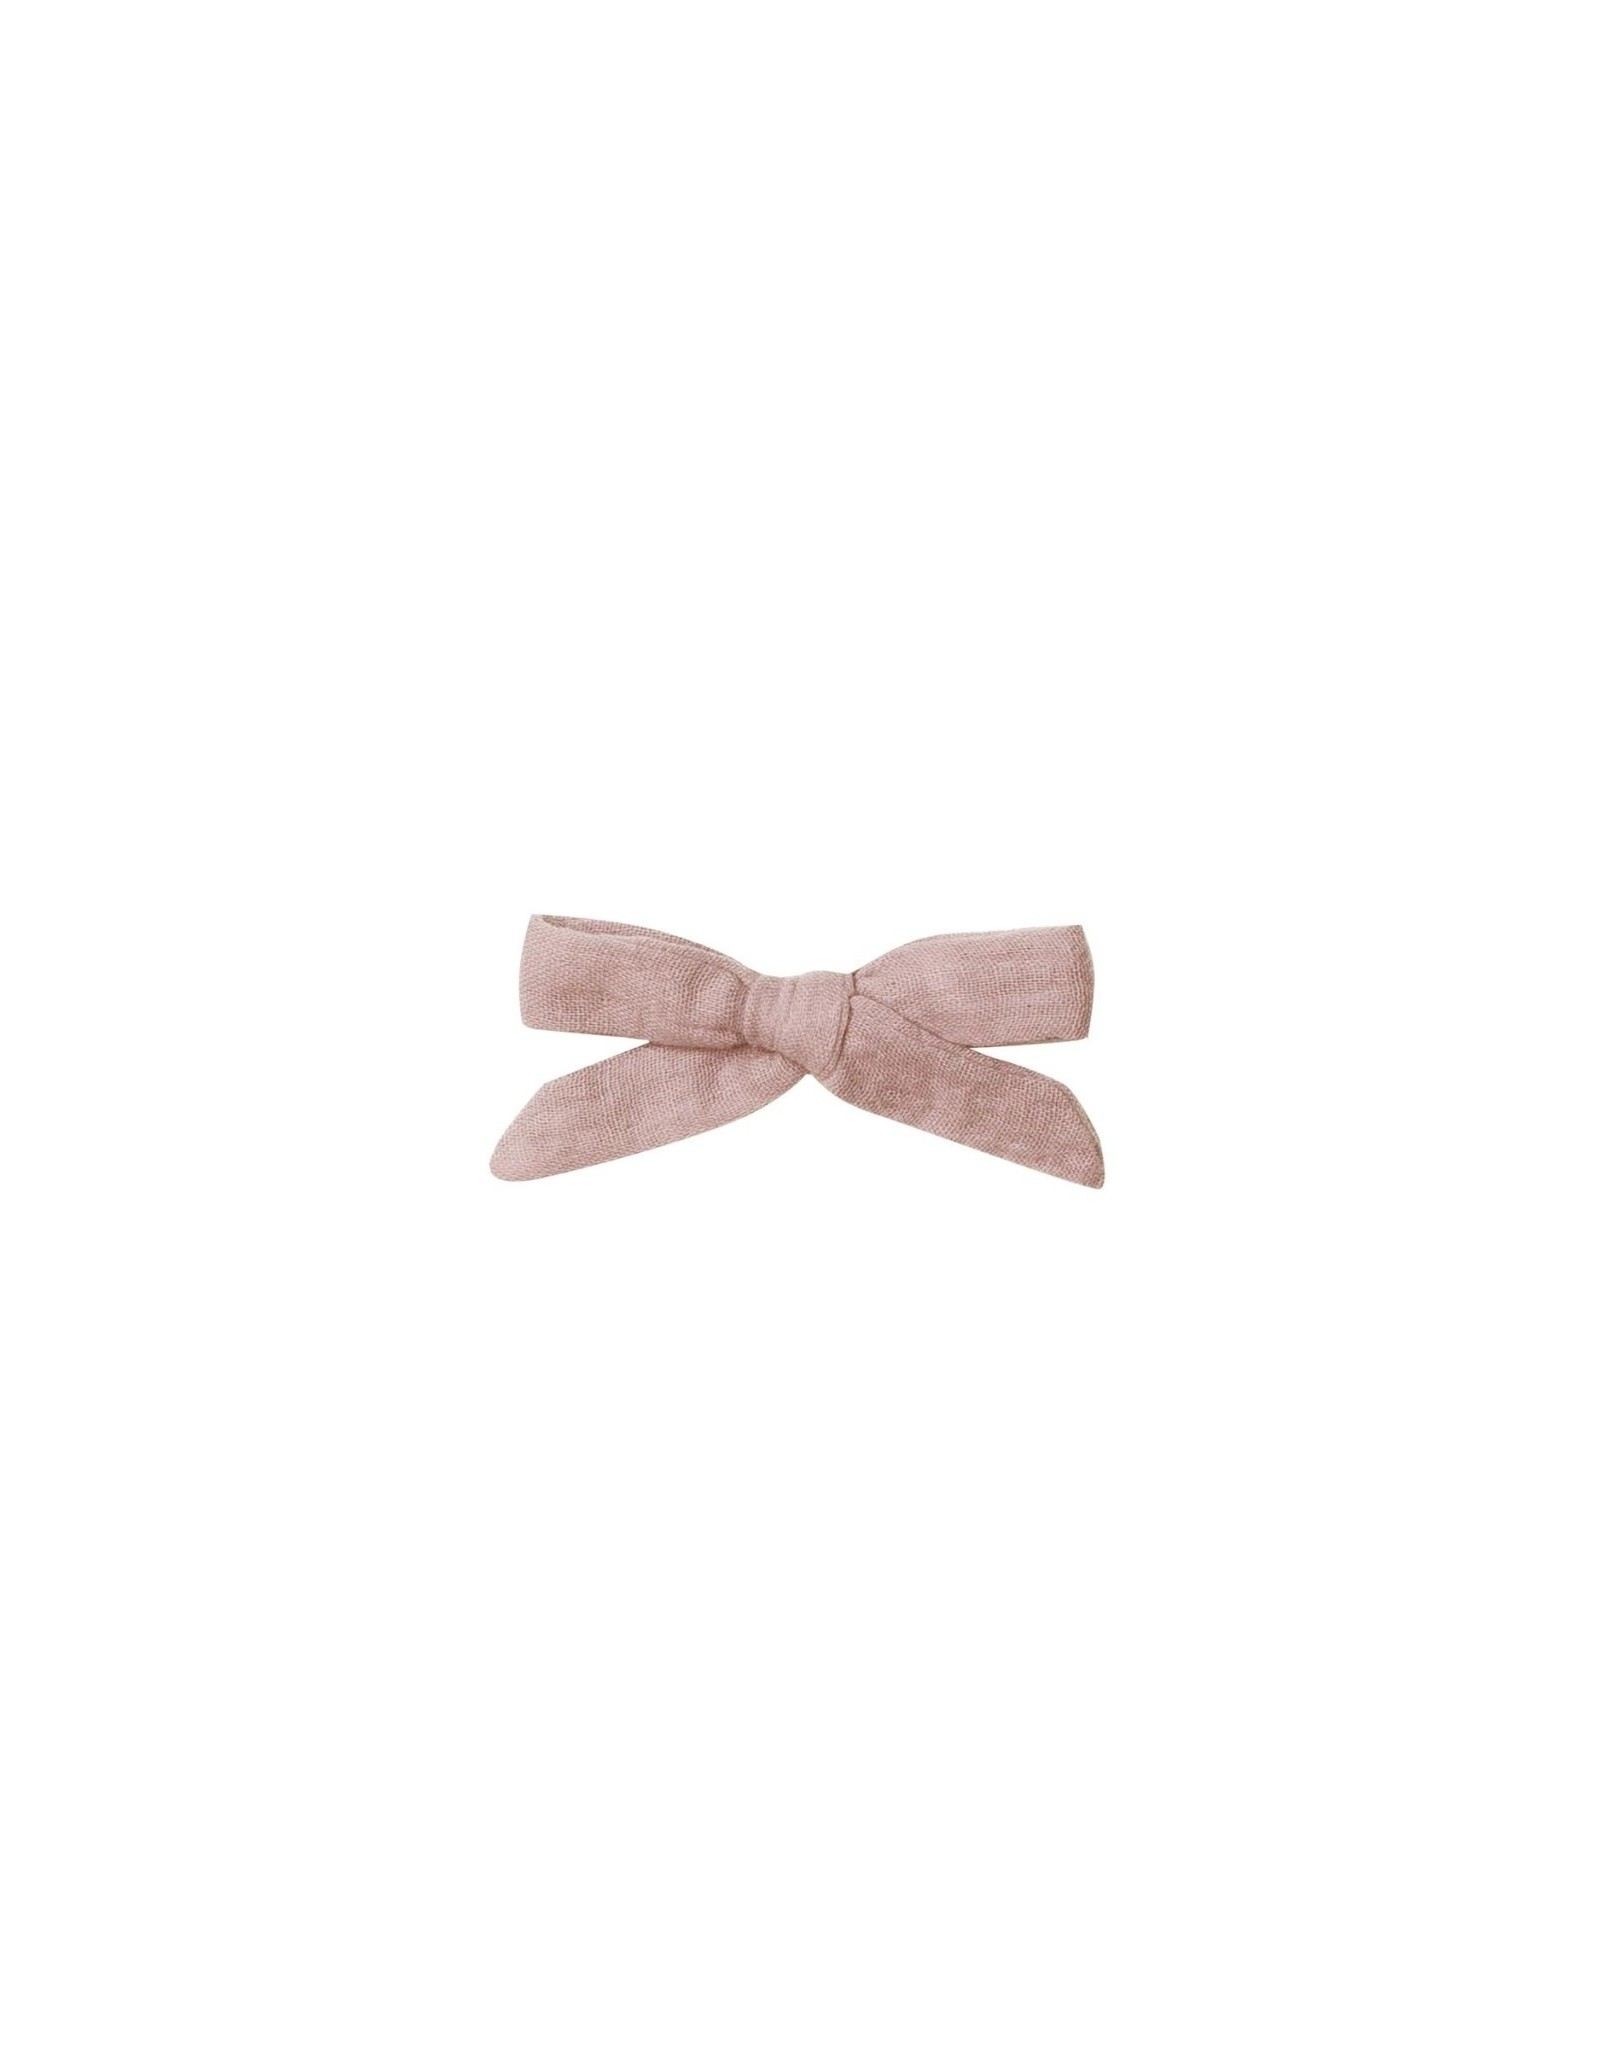 Rylee and Cru petal bow (clip)